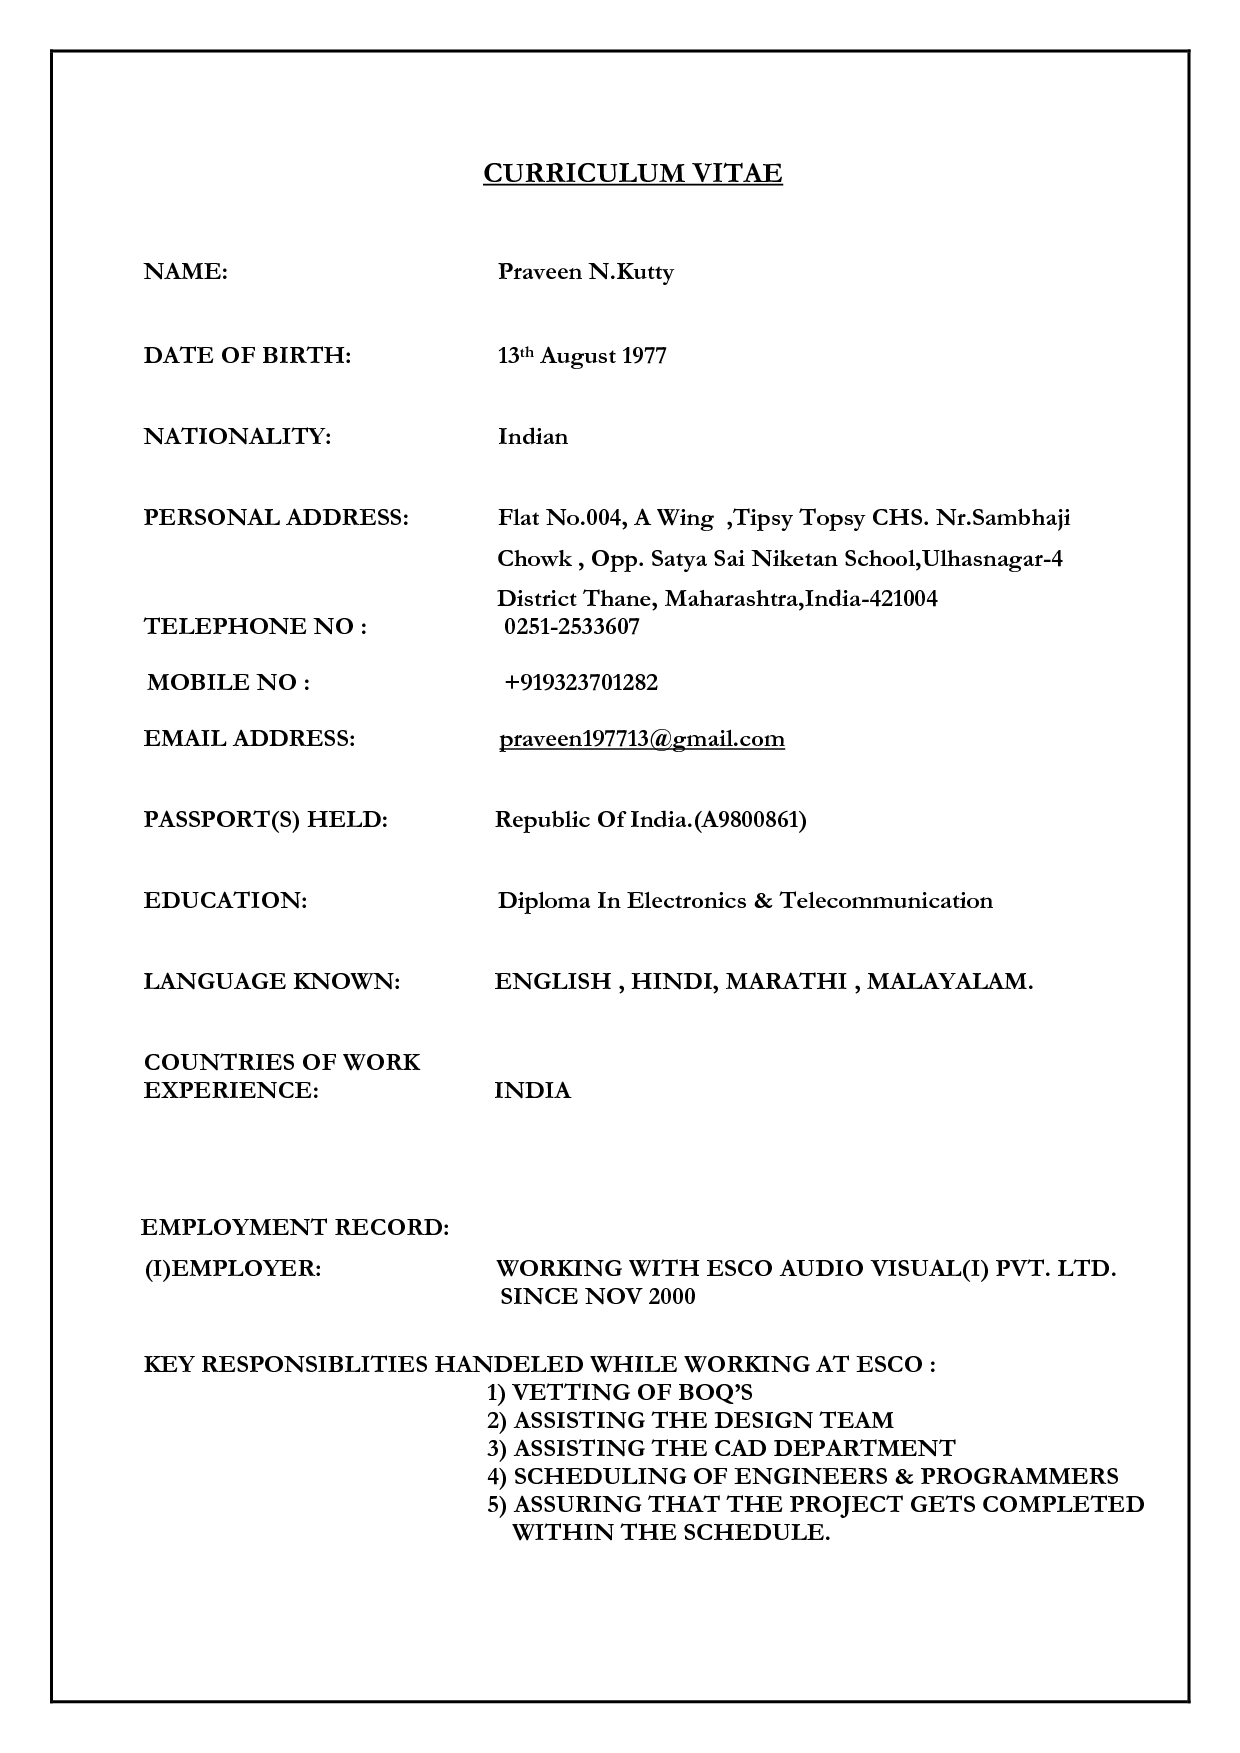 Biodata Resume Format Doc Contegri 64 Biodata For Teaching Job Minute Notes  Template How To Write Your First Resume.  Biodata For Teaching Job